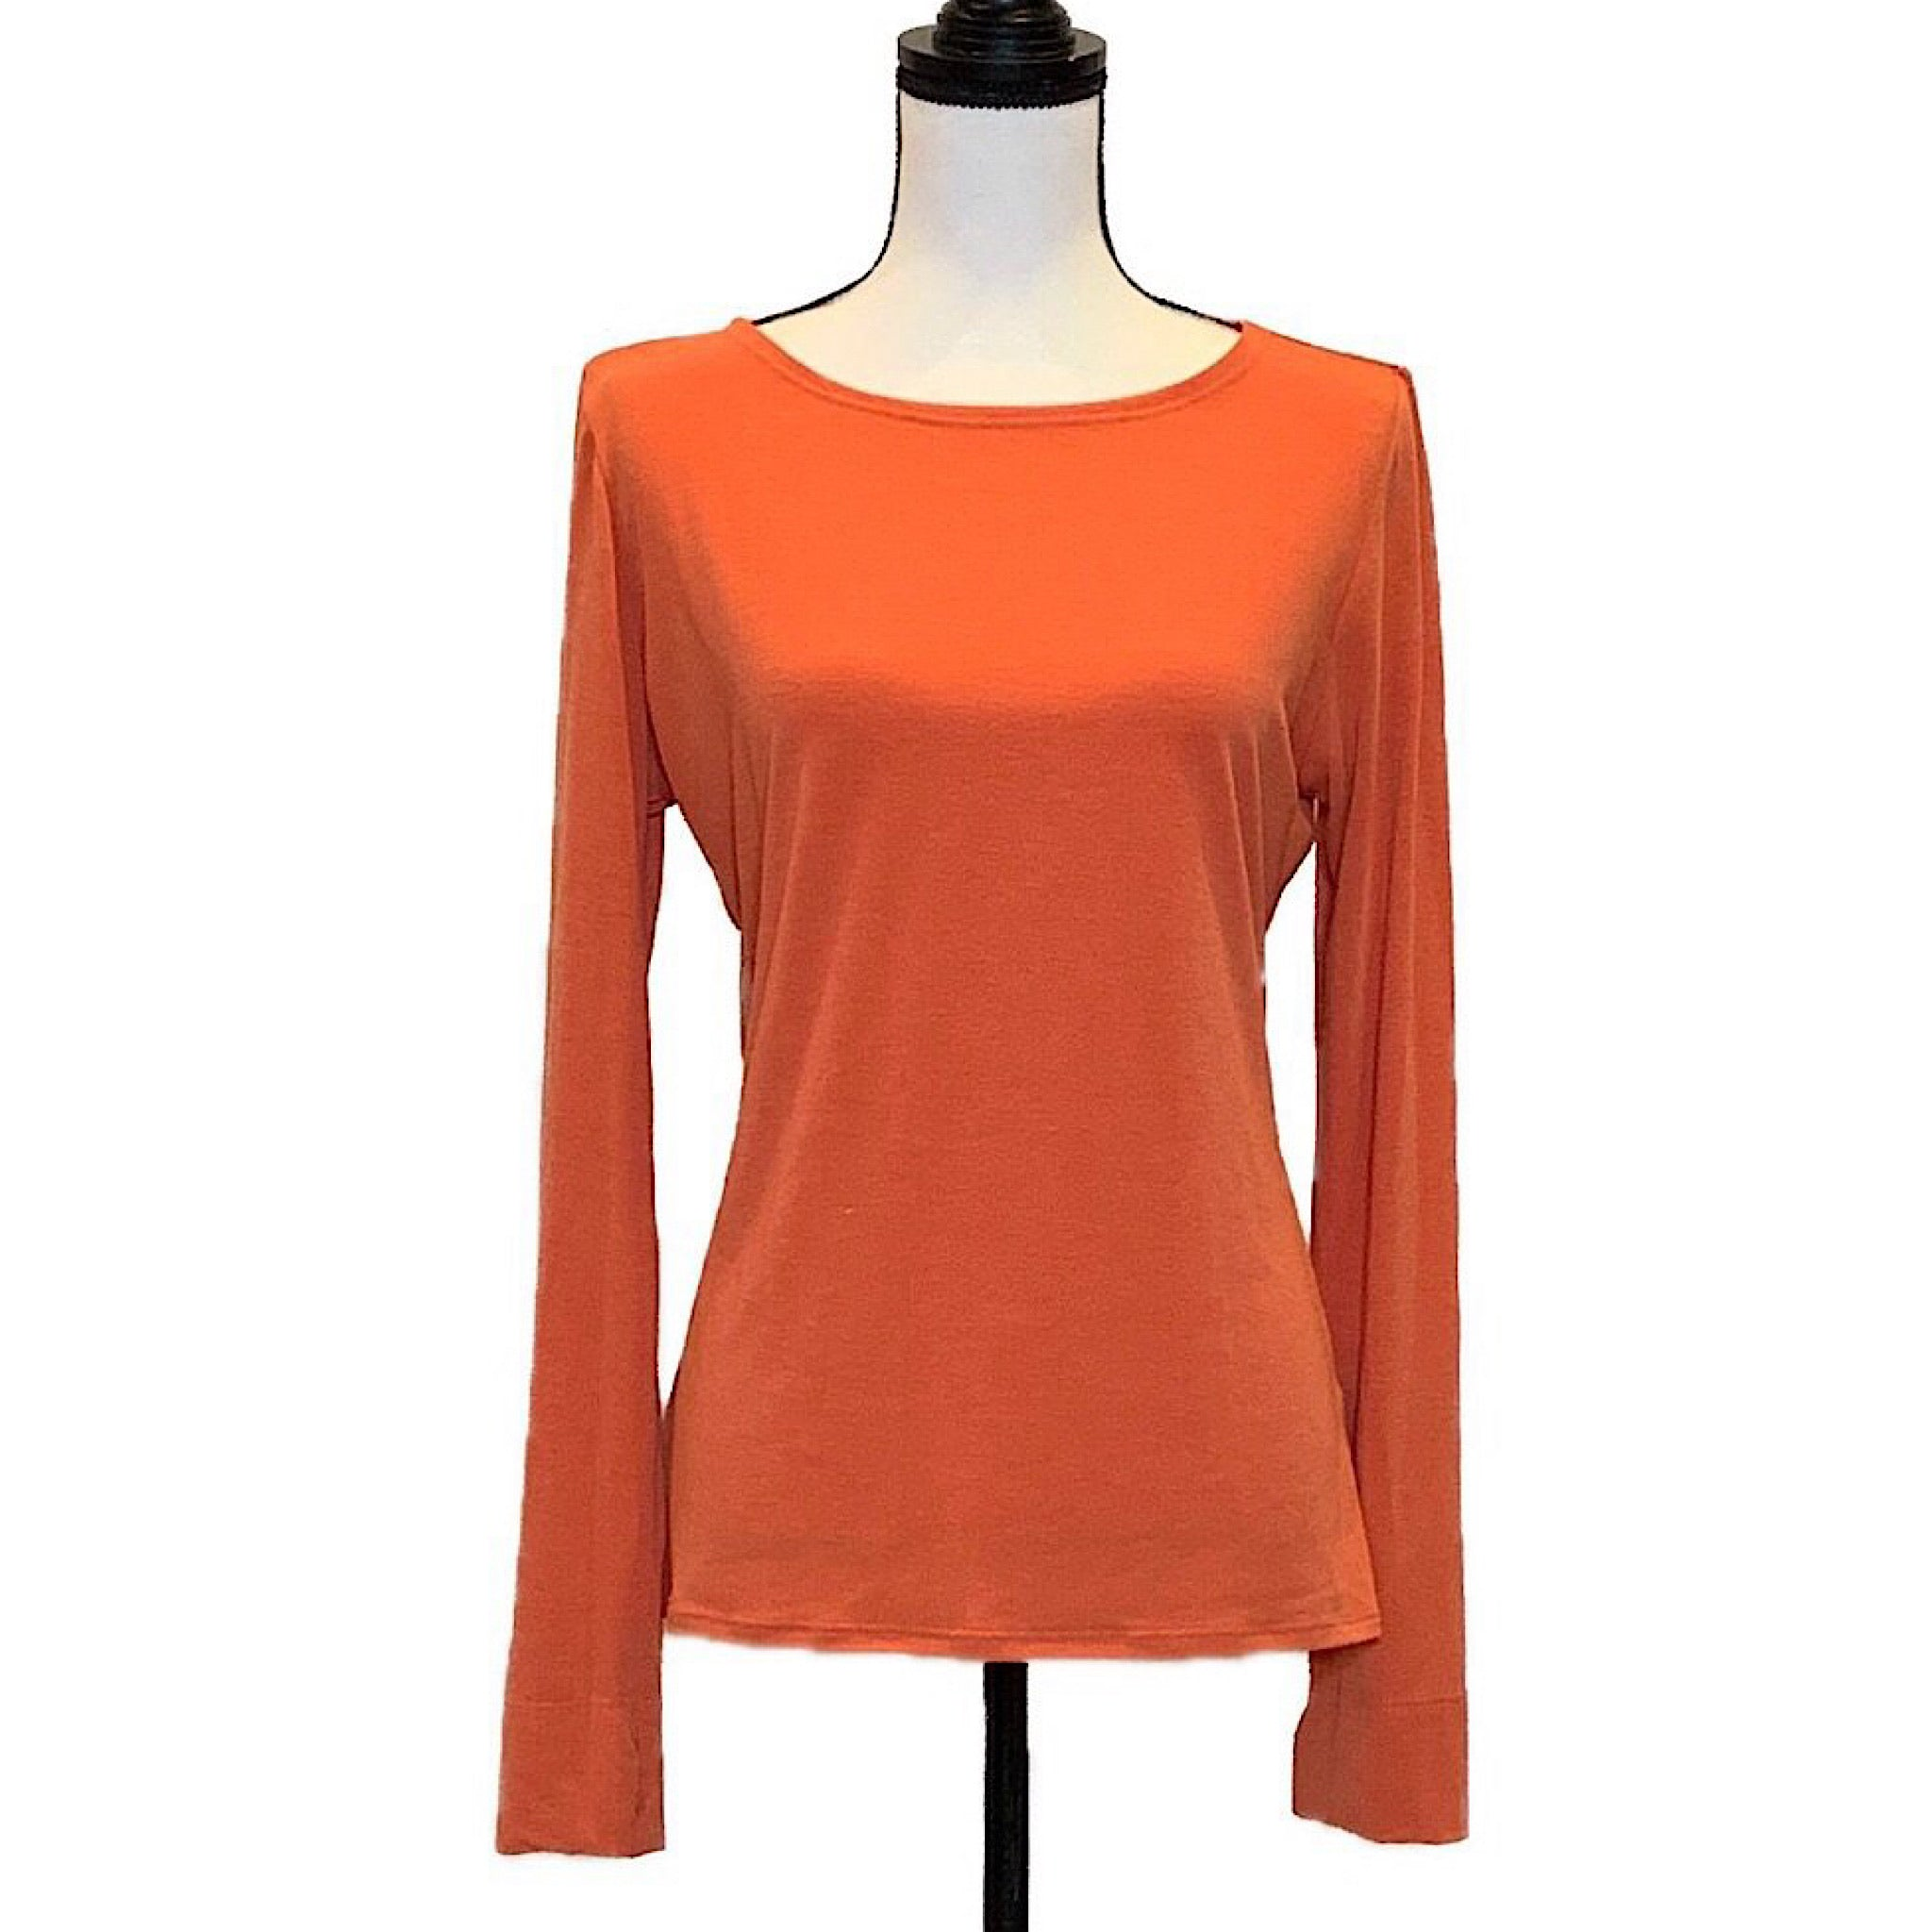 Womens UPF Crewneck Top - AMBERNOON